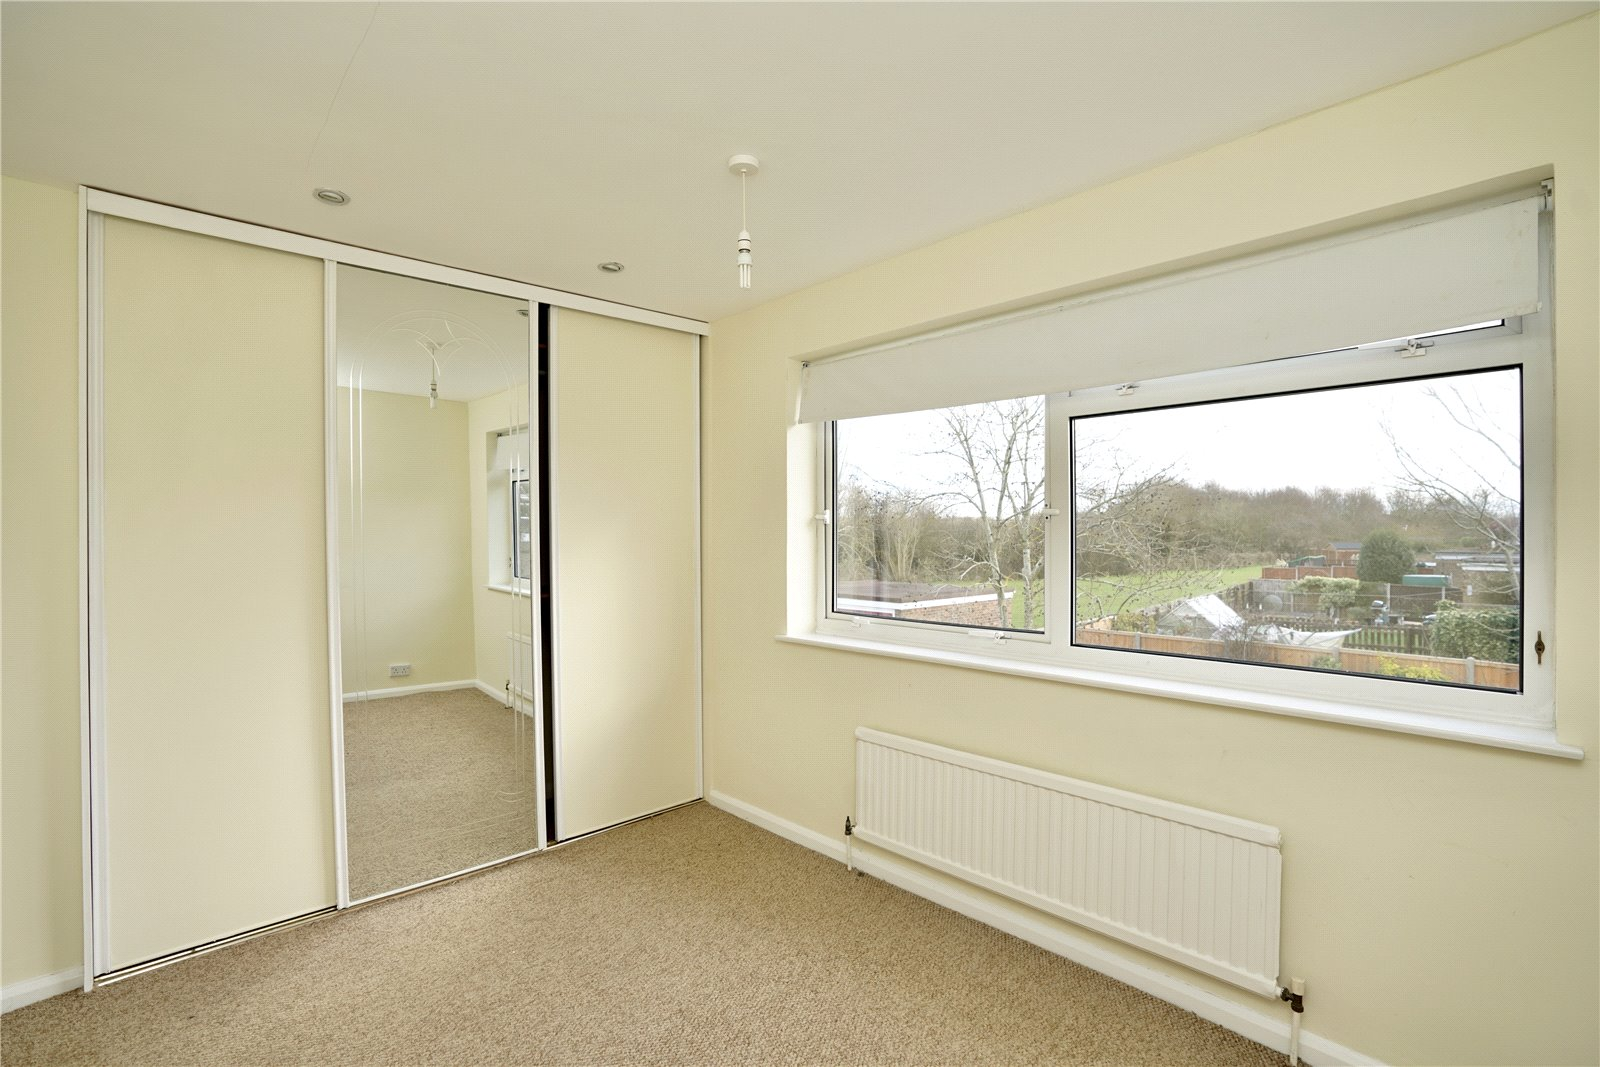 4 bed house for sale in Manor Close, Great Staughton 11